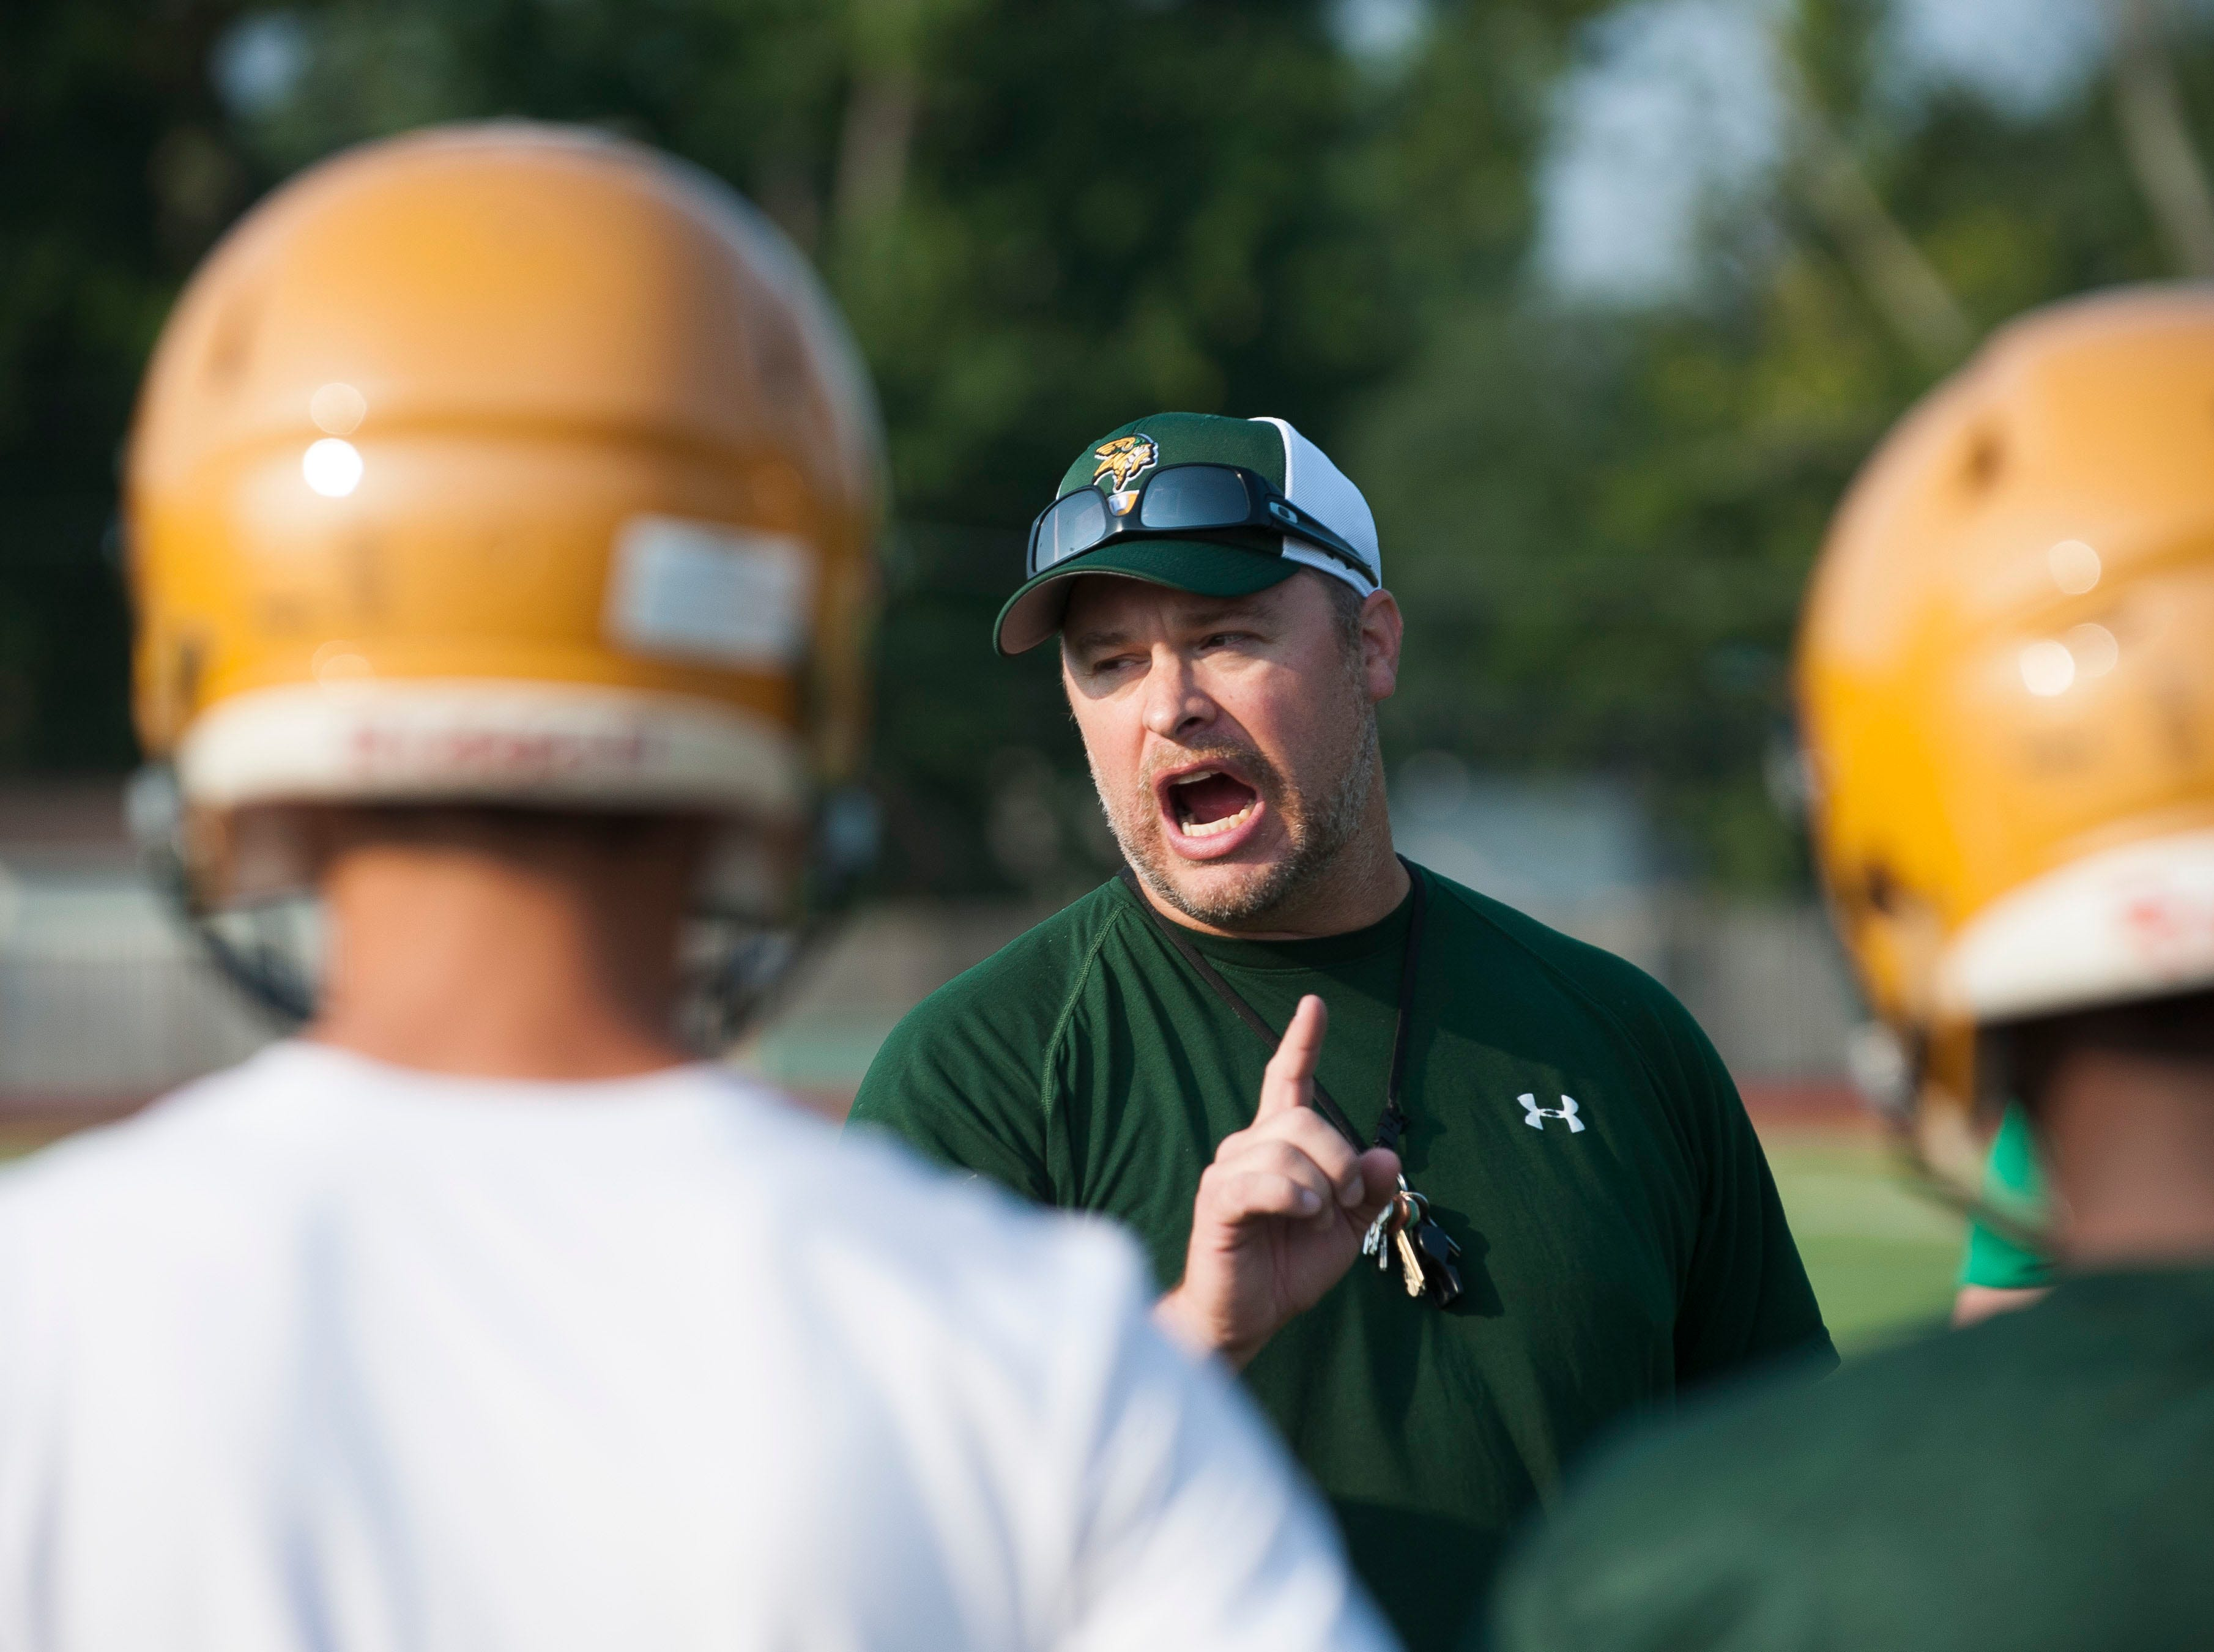 New head coach Joe Drouin leads the Grosse Pointe North football team in their first practice of the season on Monday, Aug. 6, 2018. Drouin replaces longtime North football coach Frank Sumbera.